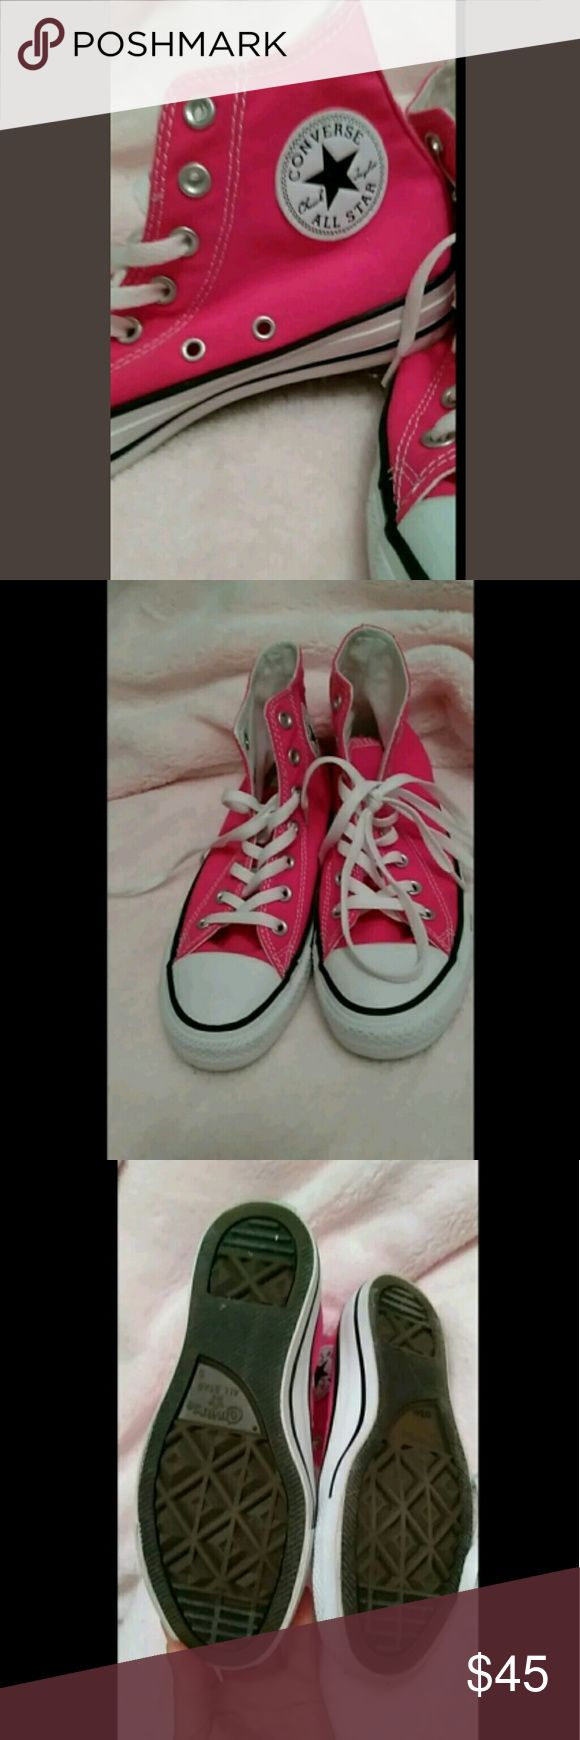 Hot pink high top Converse, womens 7, mens 5 I wore these All Stars twice. Almost new condition. Awesome Chuck Taylors. Size on bottom says 5 but these are definitely 7s (on a lady!) 😆 Converse Shoes